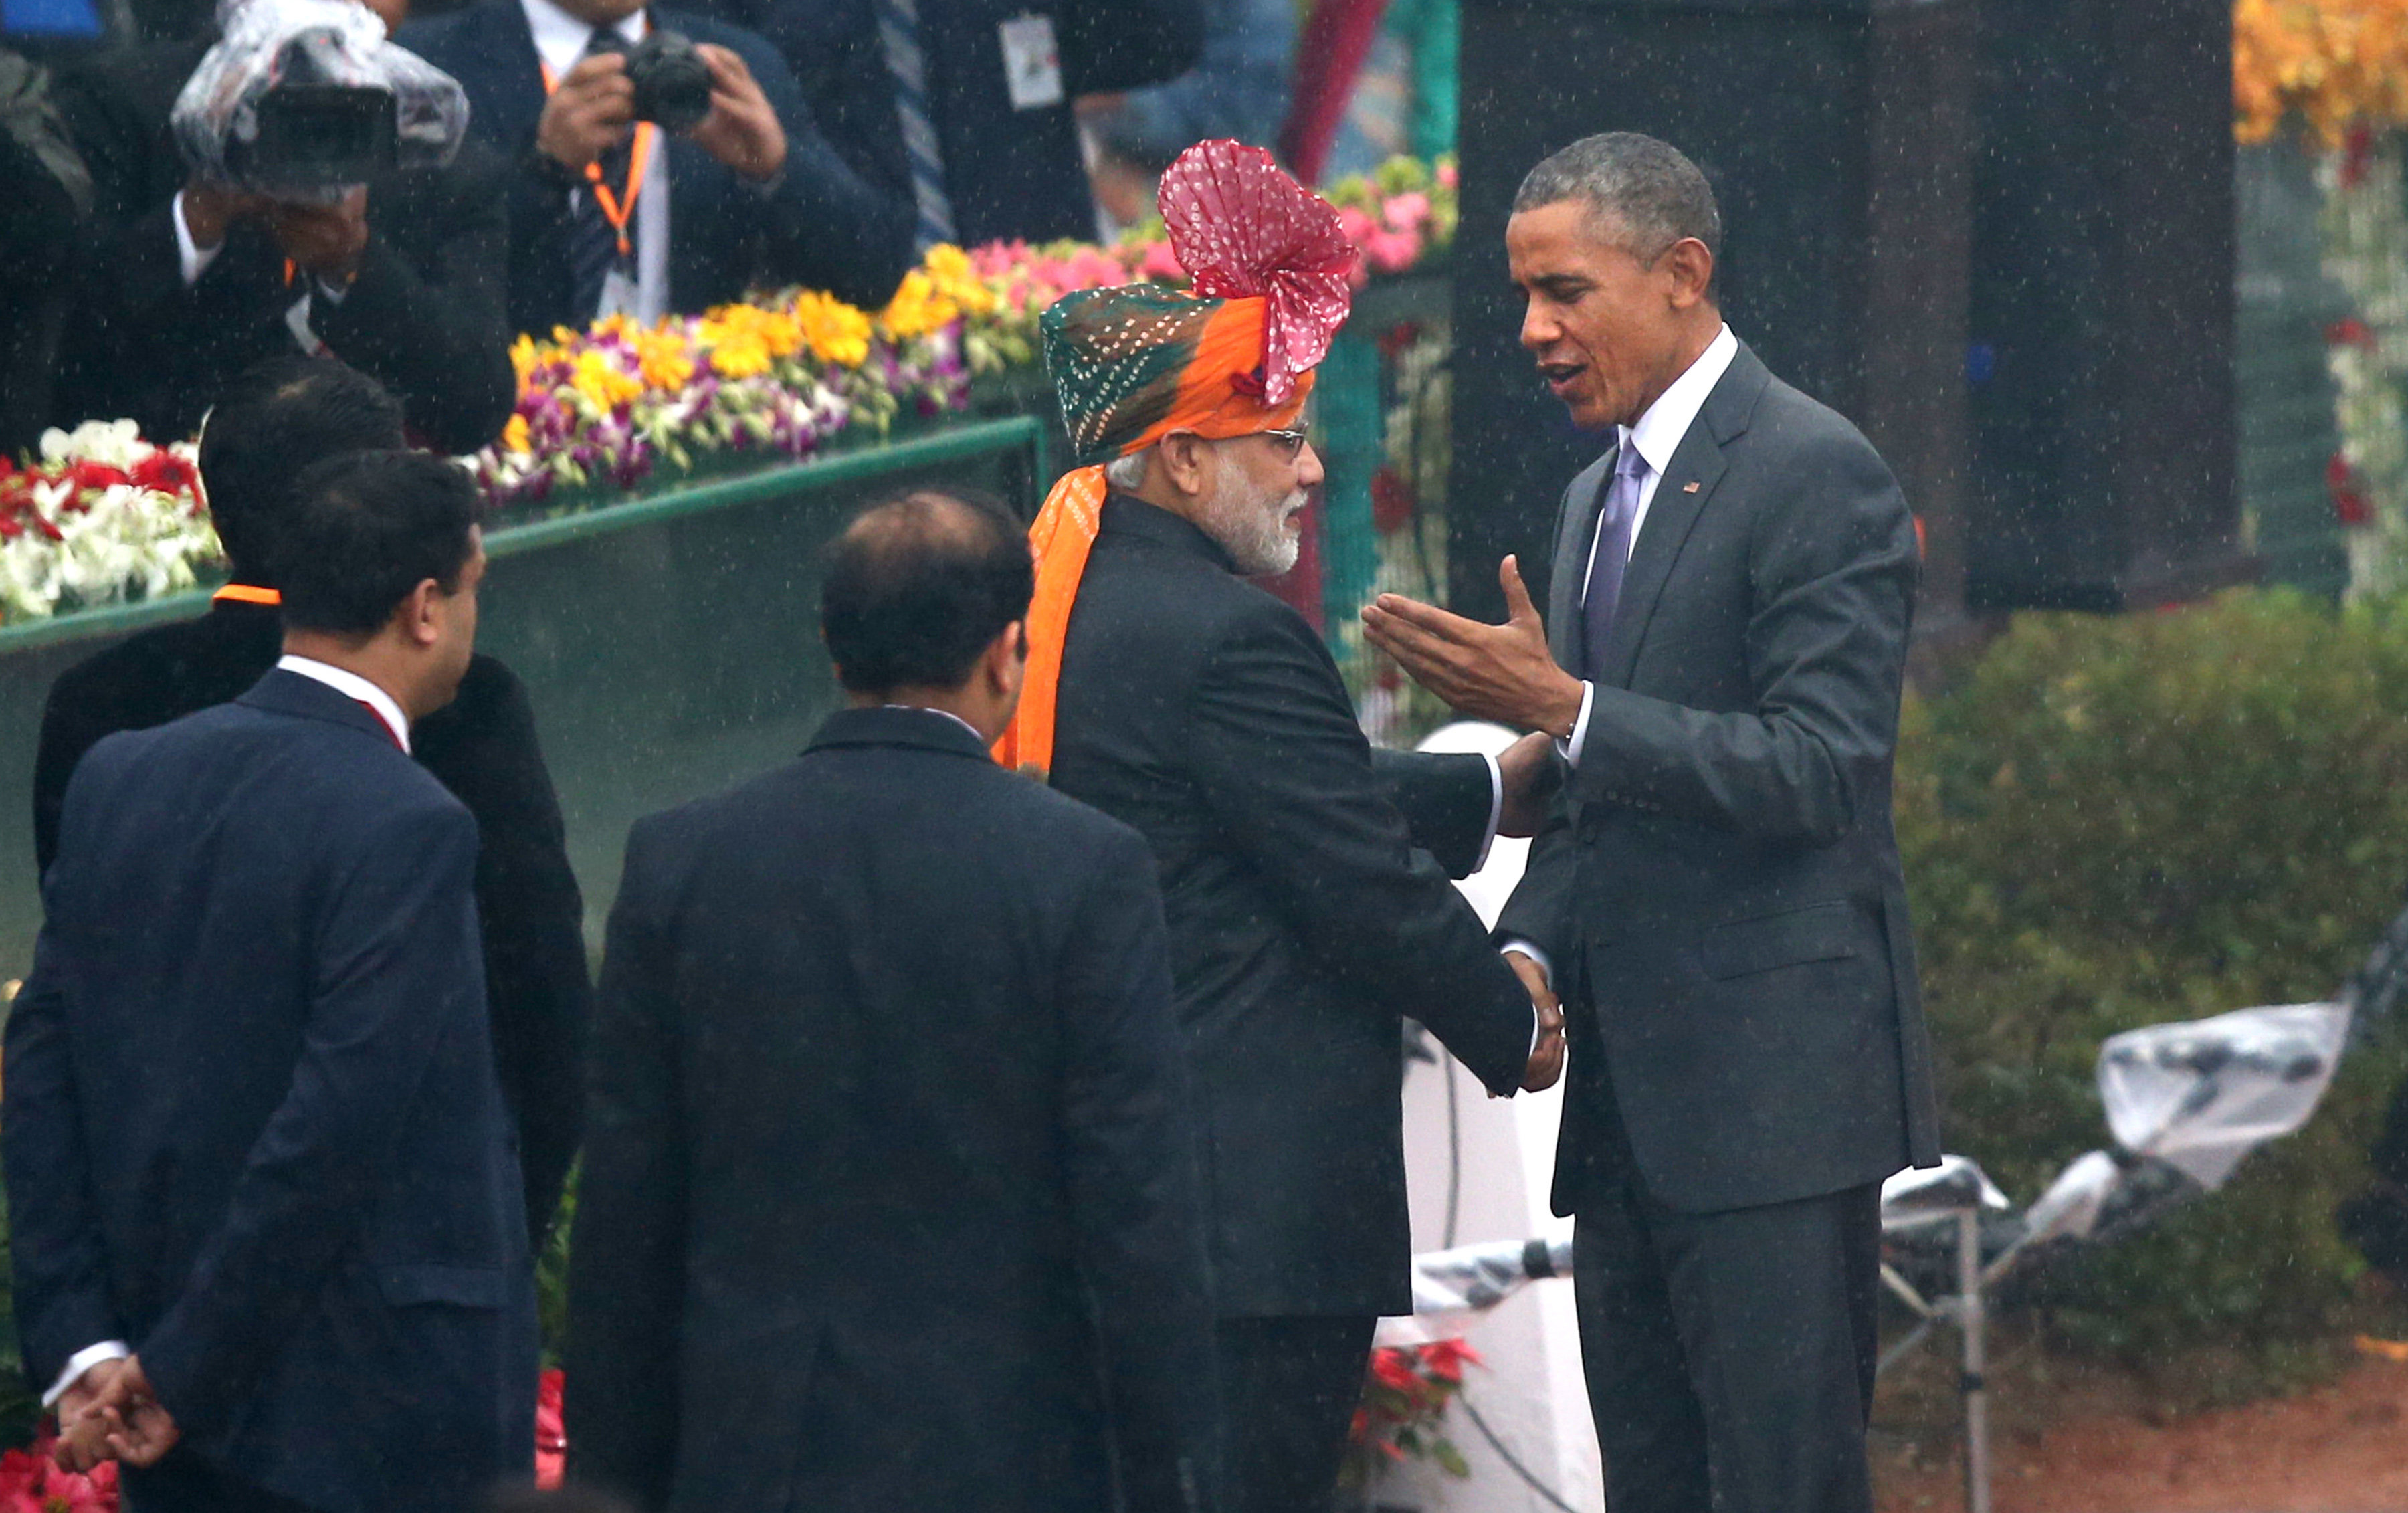 President Barack Obama shakes hand with Indian Prime Minister Narendra Modi as he arrives to preside over India's annual Republic Day parade in New Delhi, India, Monday, Jan. 26, 2015.